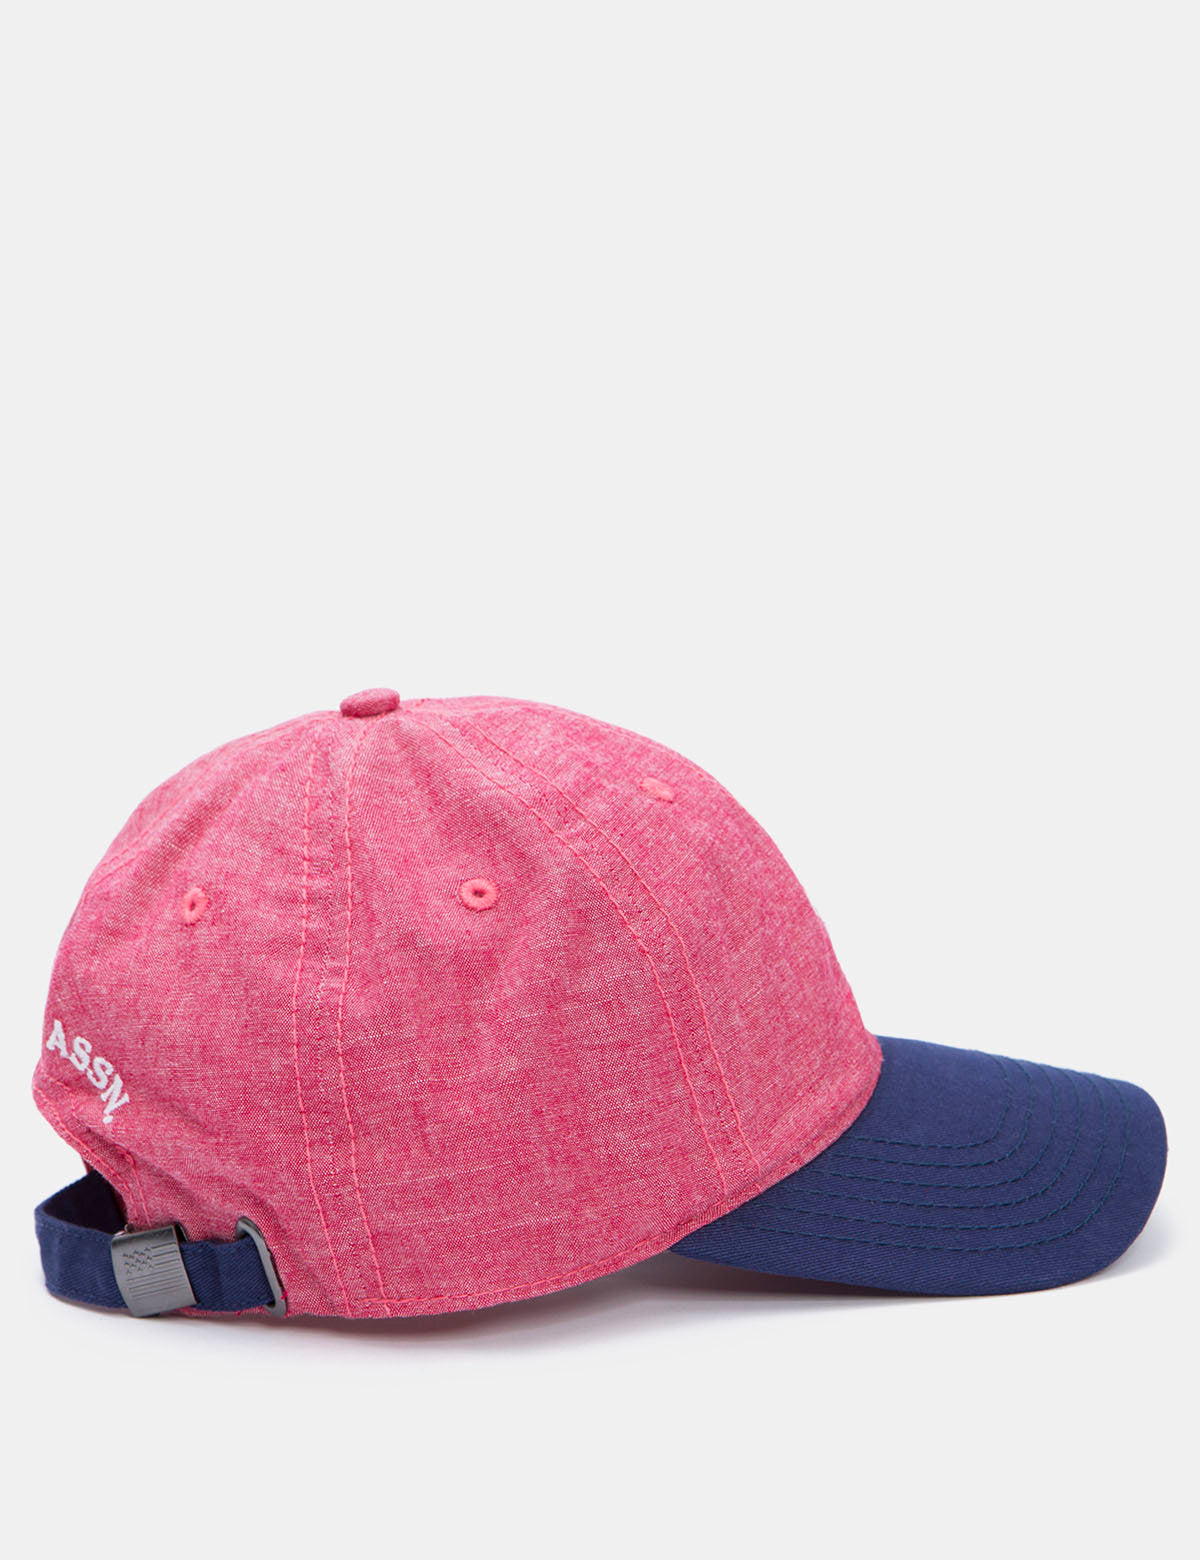 COLORBLOCK HAT - U.S. Polo Assn.